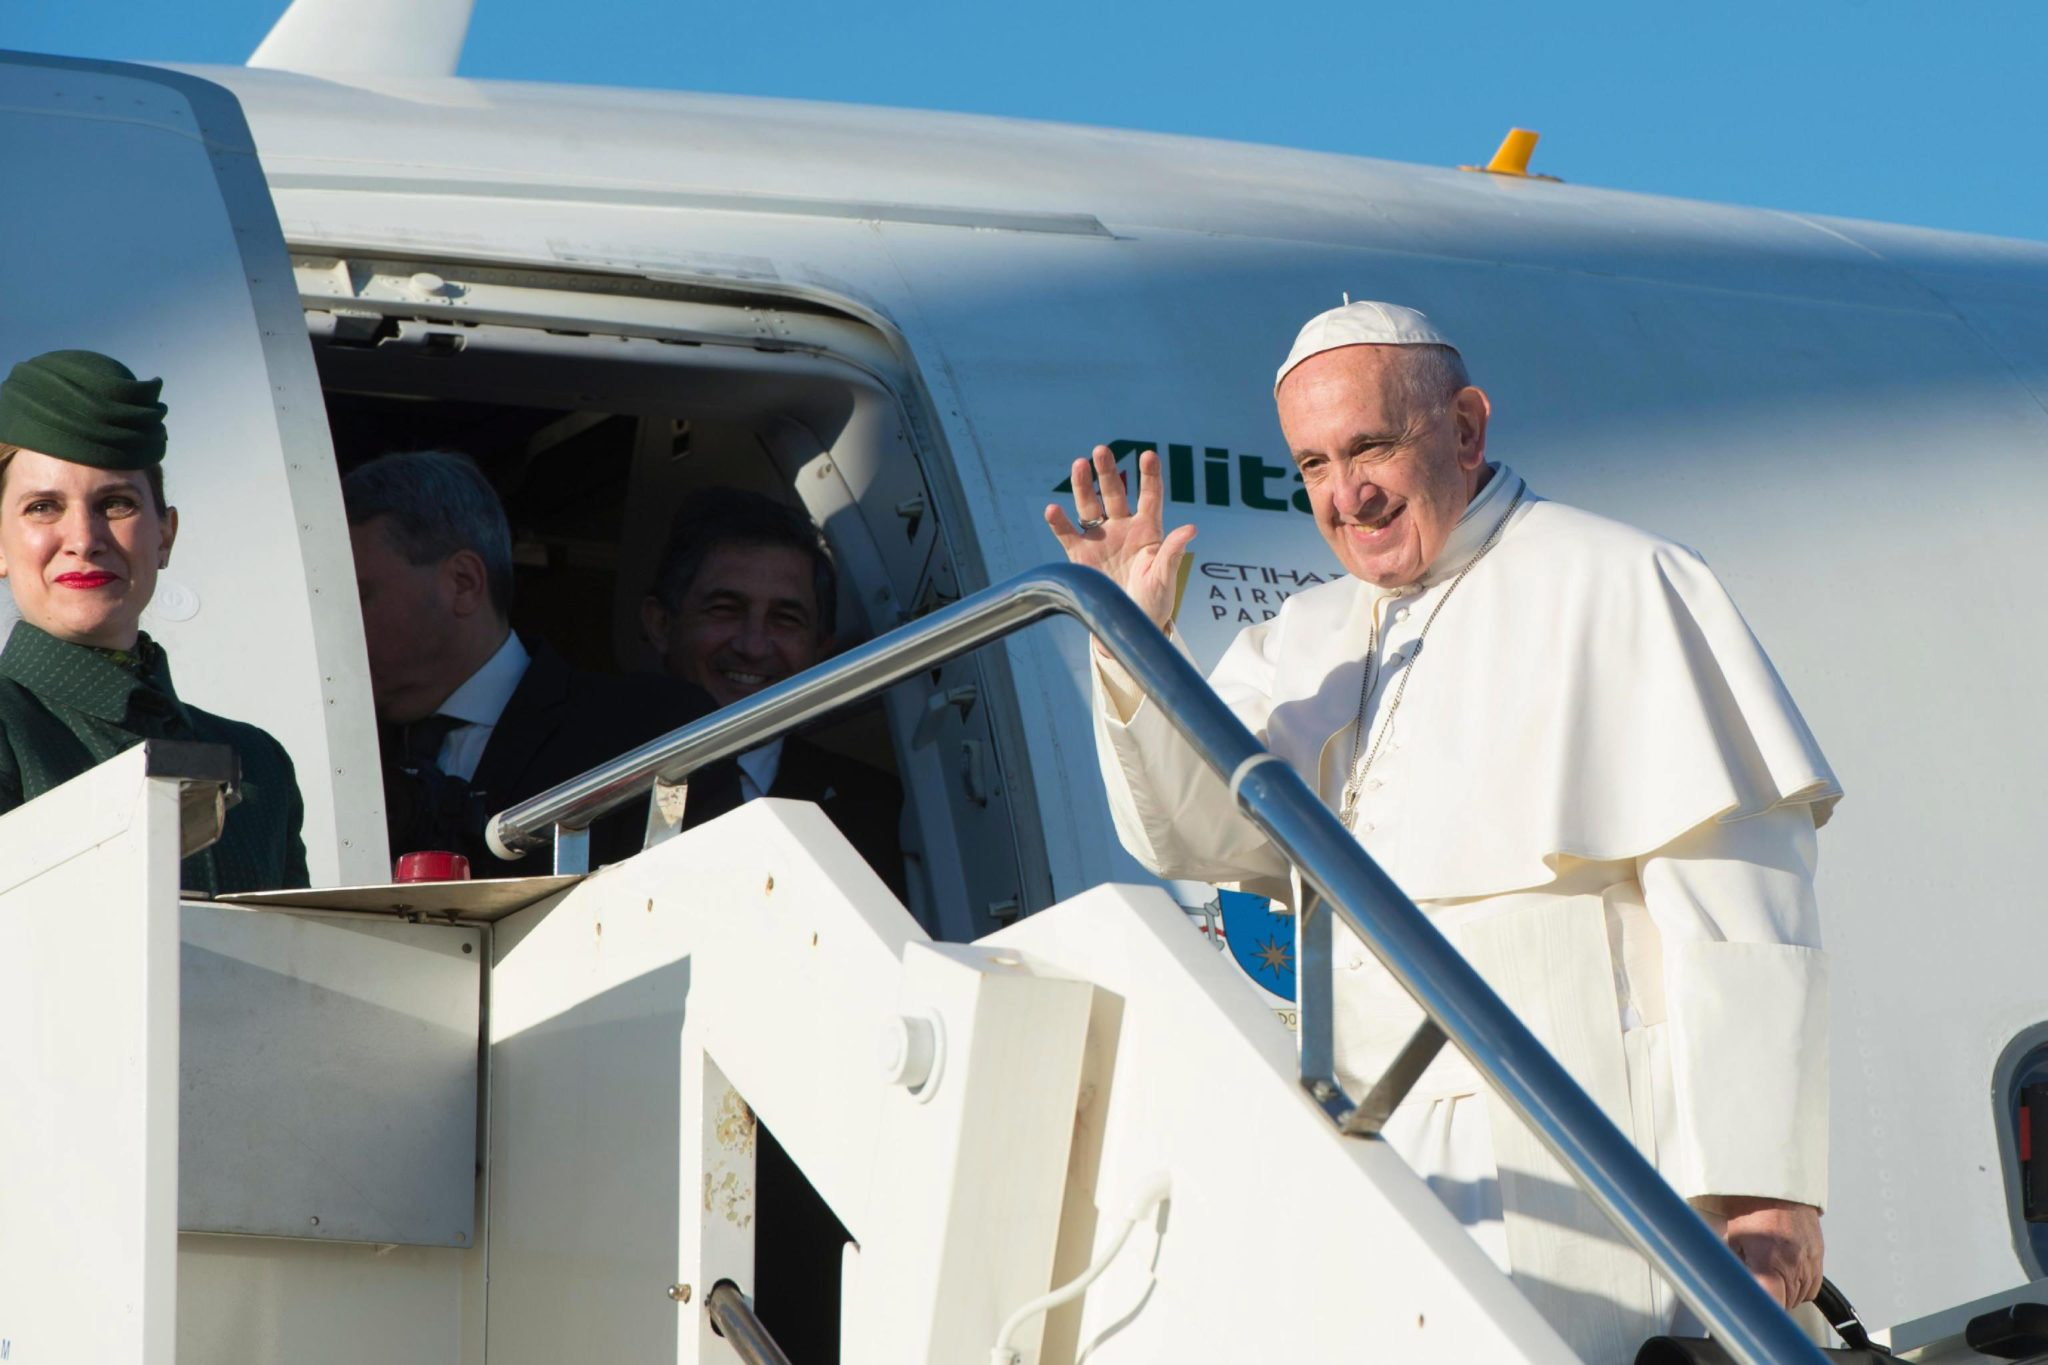 epa05610890 A handout picture provided by the Vatican newspaper L'Osservatore Romano shows Pope Francis boarding a plane for a two days visit to Sweden, at Fiumicino Airport, Rome, Italy, 31 October 2016. Pope Francis is visiting Malmo and Lund to participate in an ecumenical service and the beginning of a year of activities to mark the joint Lutheran-Catholic commemoration of the 500th anniversary of the Reformation.  EPA/OSSERVATORE ROMANO/HANDOUT  HANDOUT EDITORIAL USE ONLY/NO SALES Dostawca: PAP/EPA.